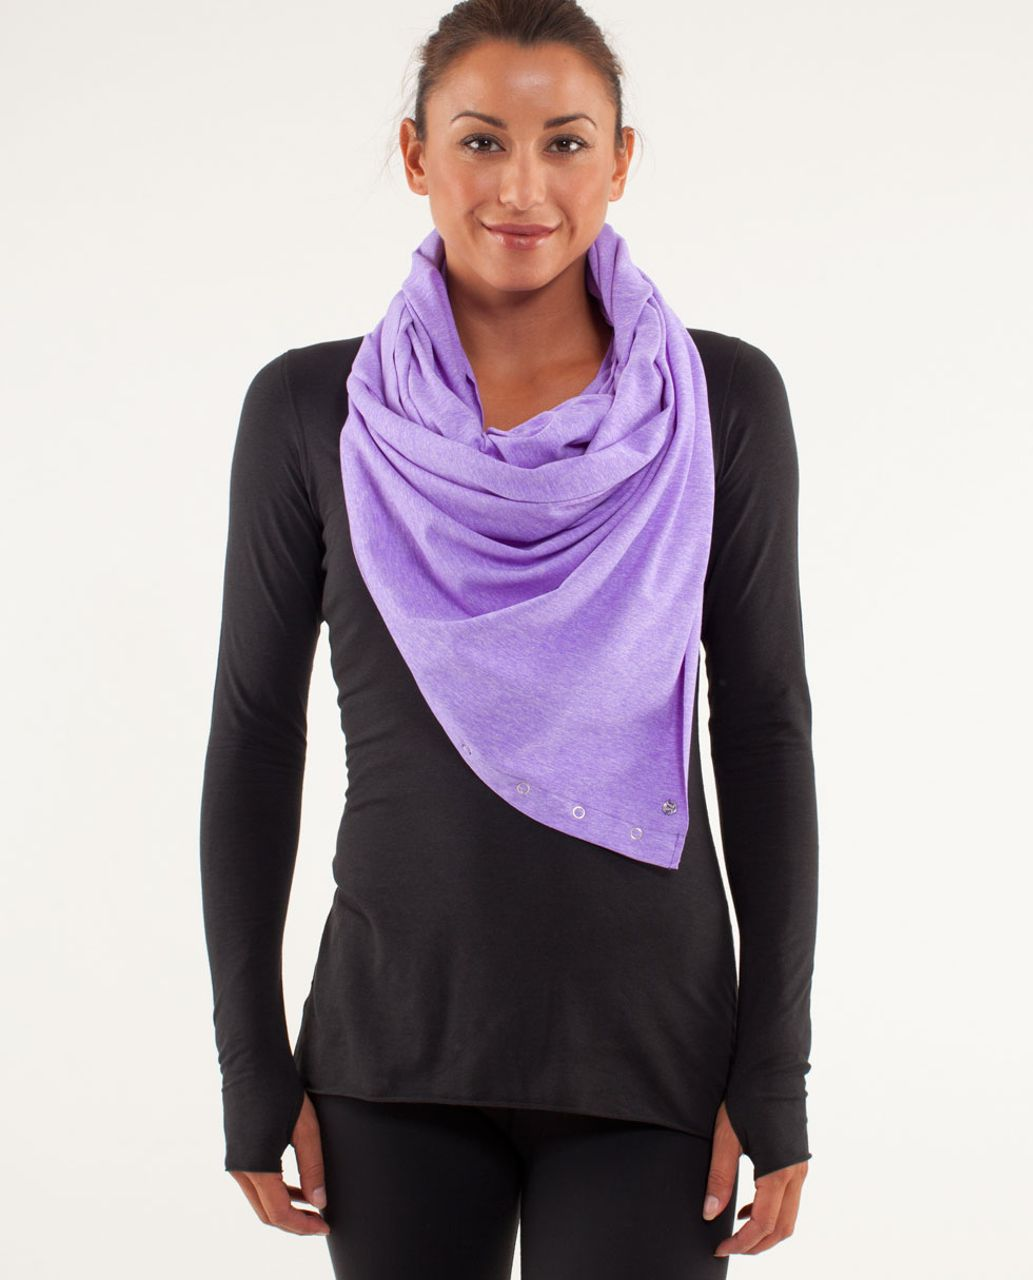 Lululemon Vinyasa Scarf *Rulu - Power Purple